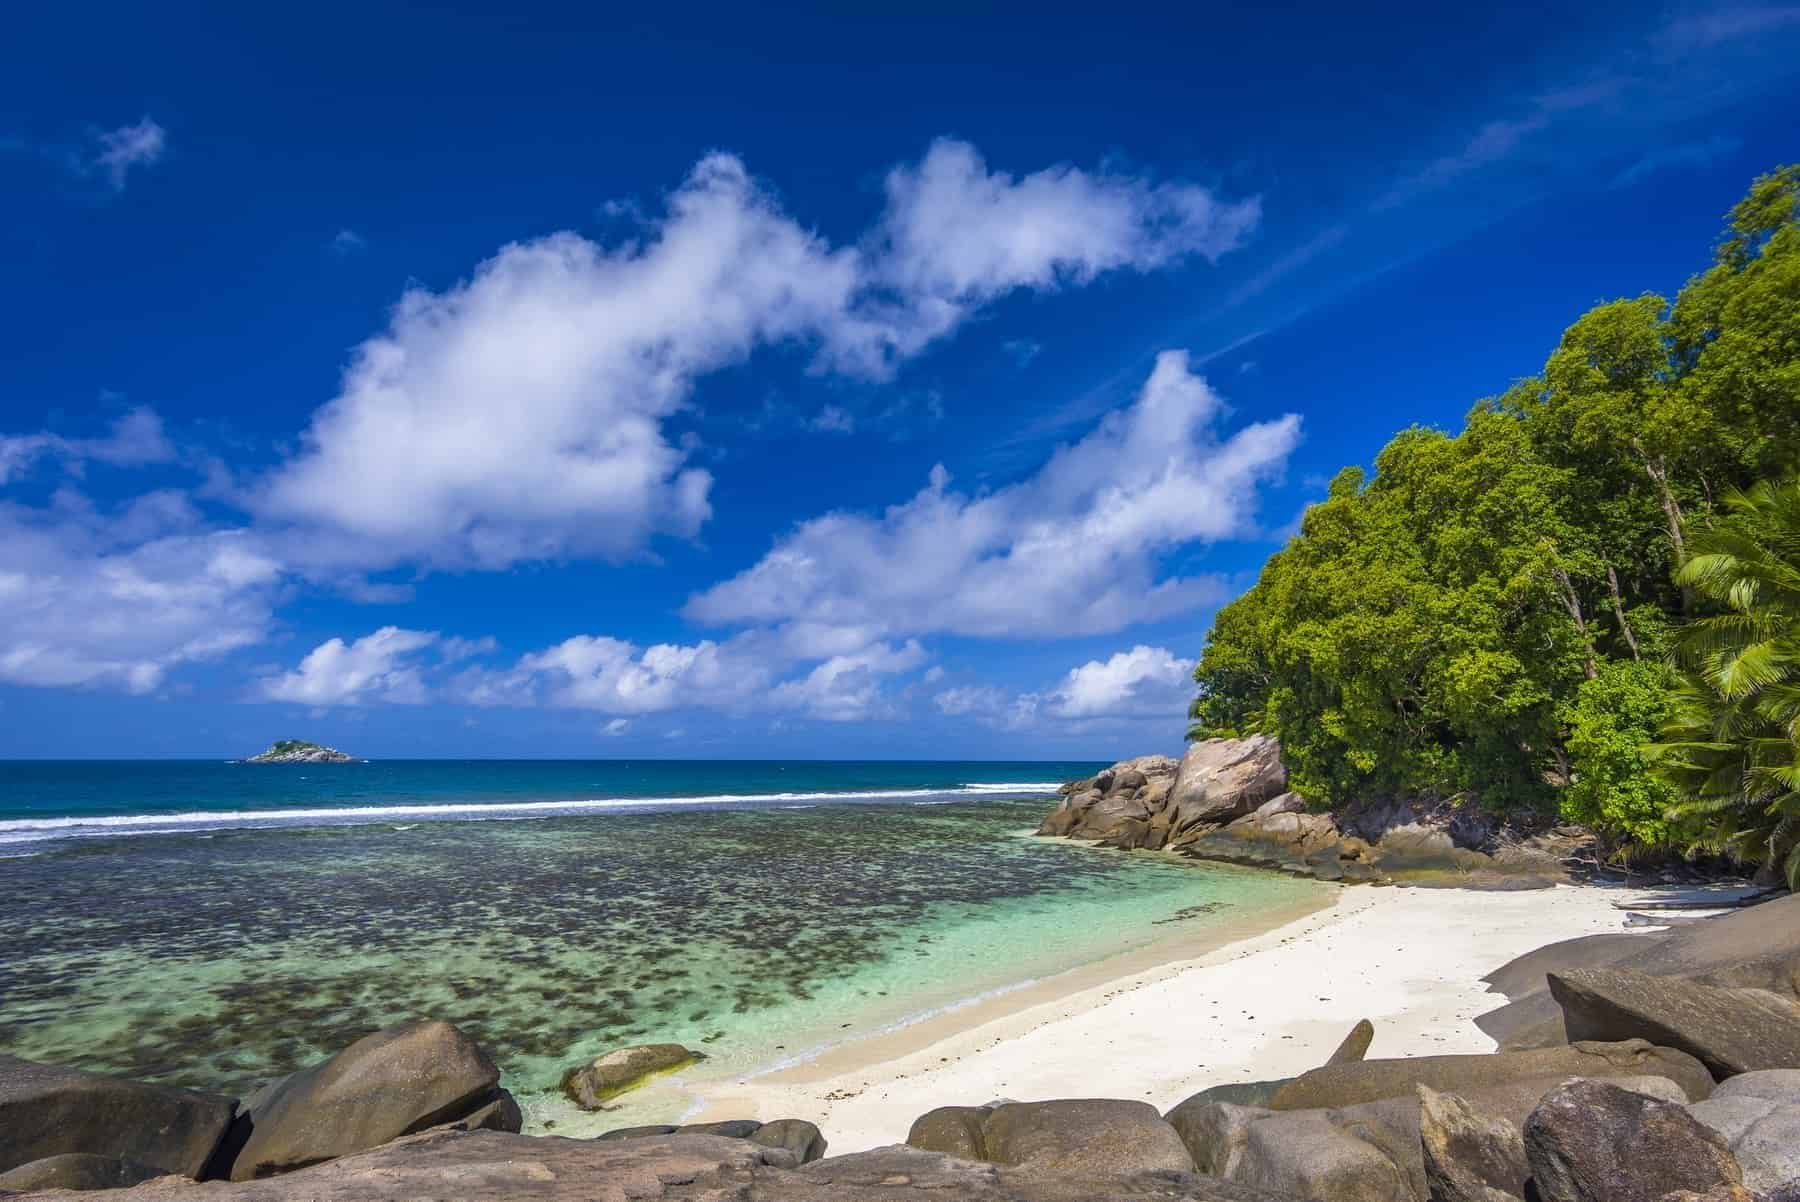 Moyenne Island is a small island in the Ste Anne Marine National Park off the north coast of Mahé, Seychelles